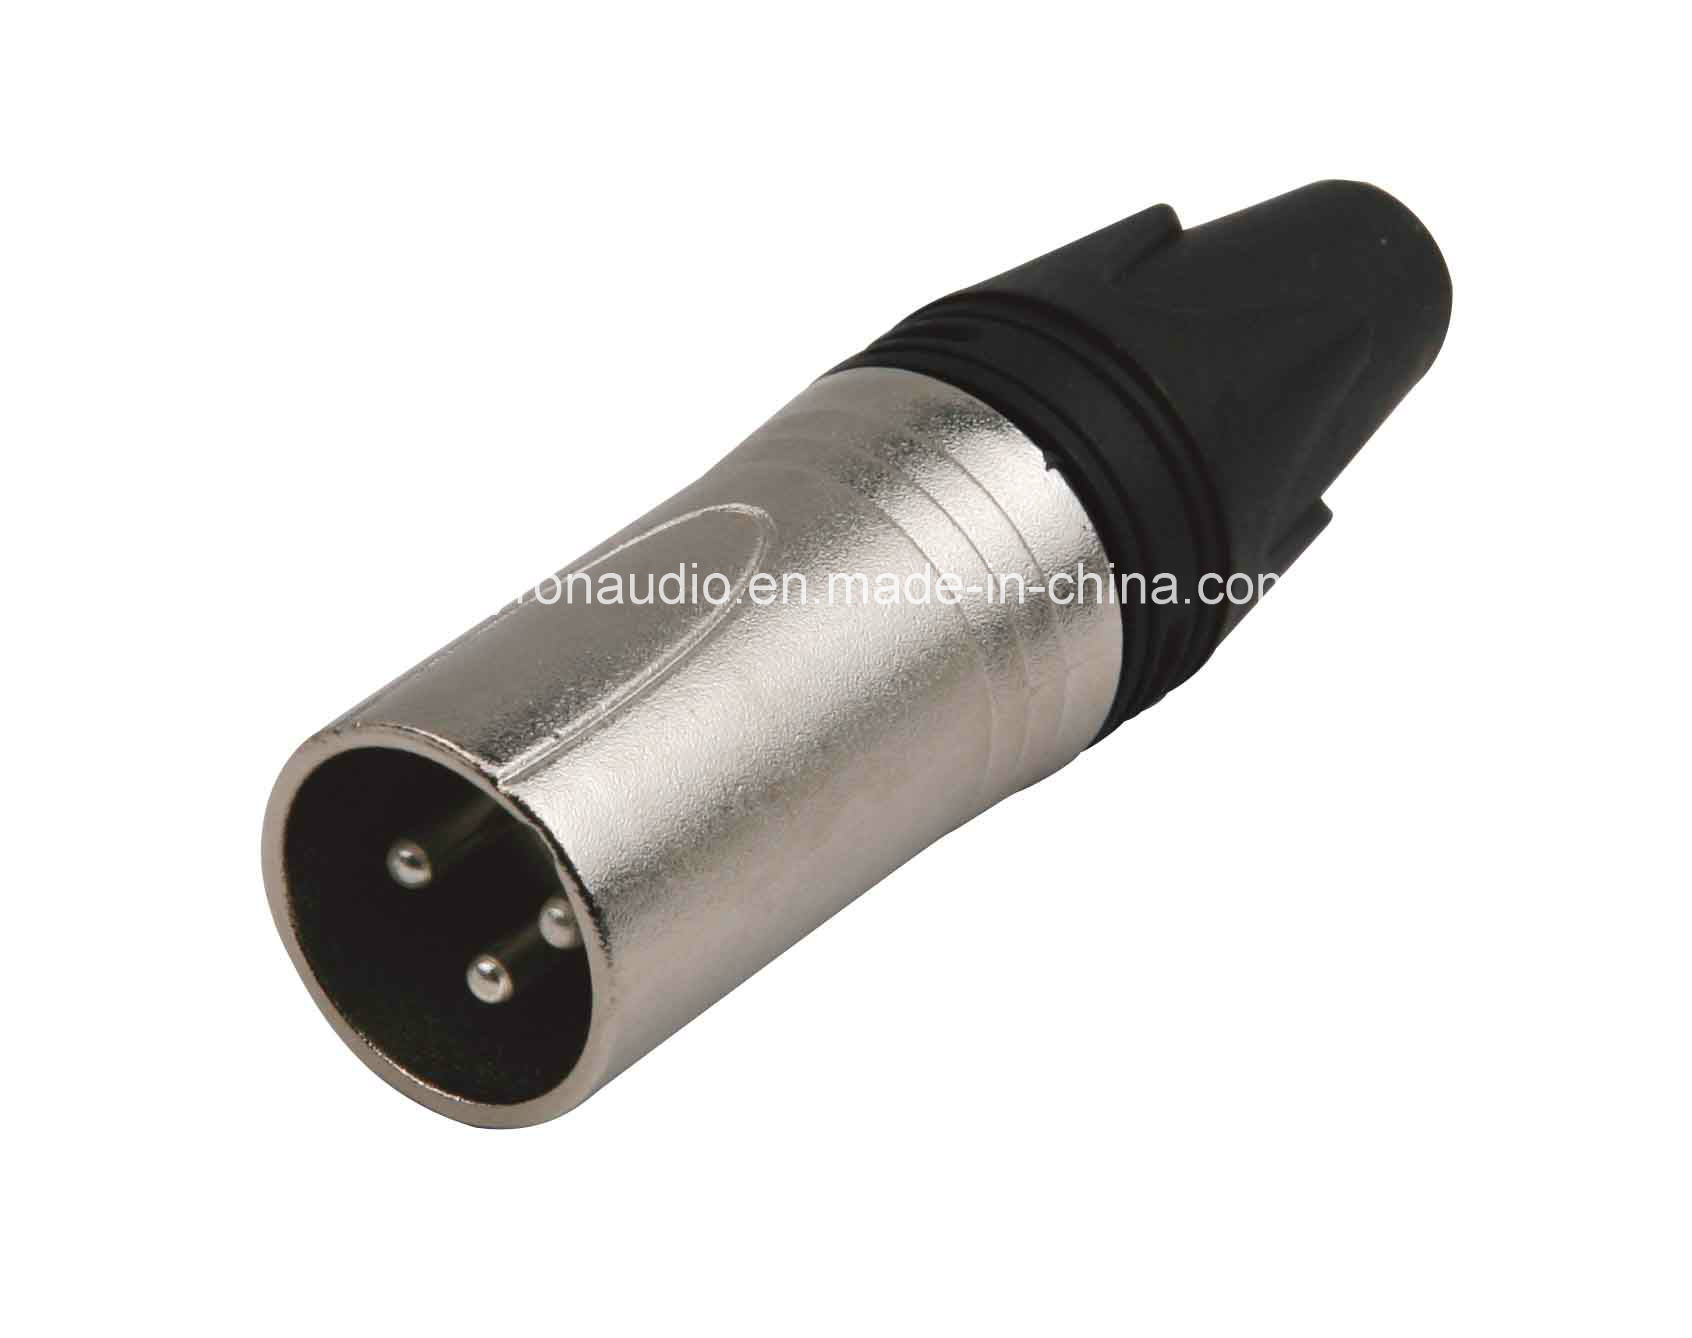 Audio Connector XLR for Microphone Cable